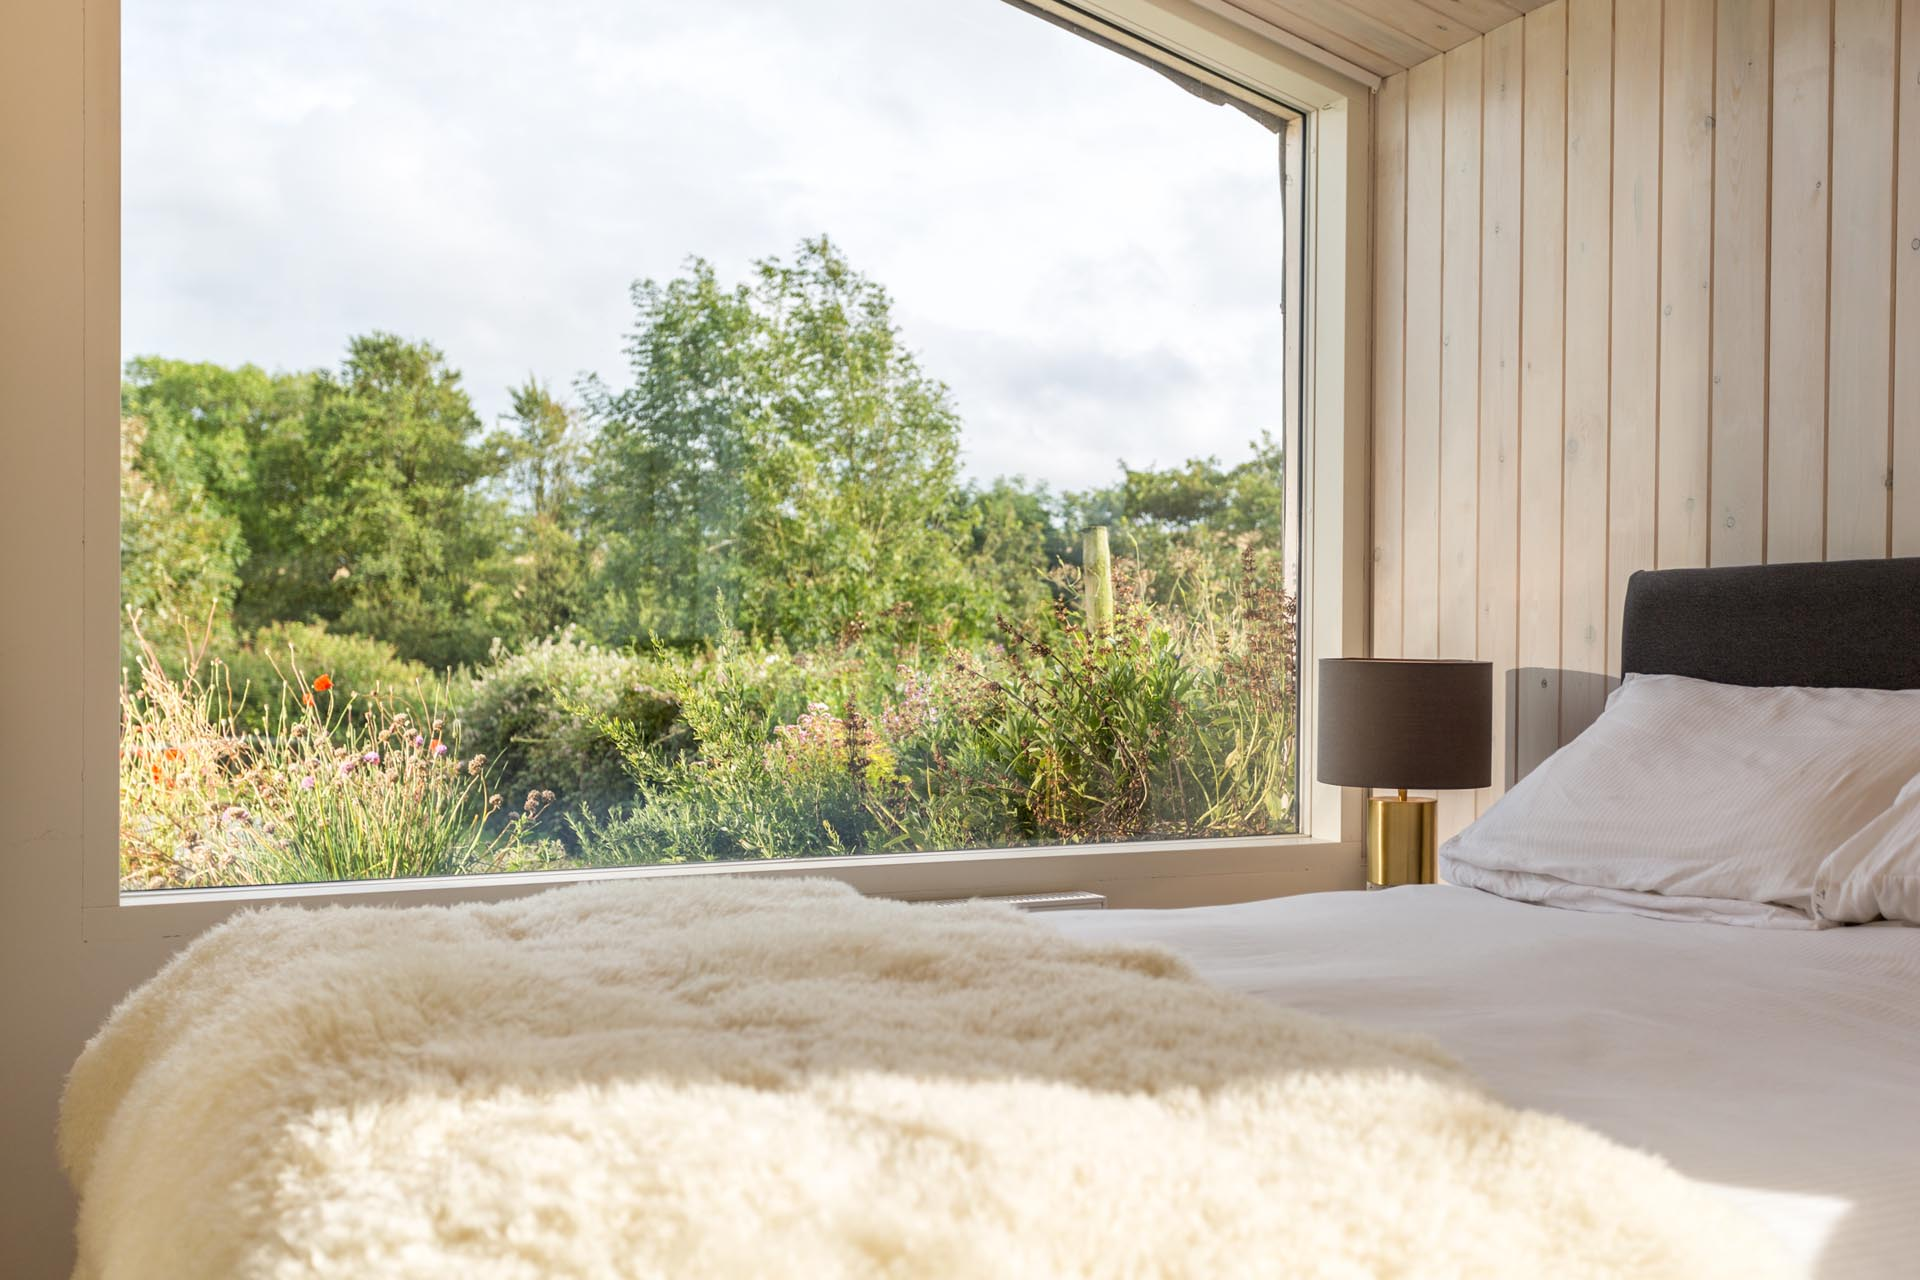 In this modern bedroom, there's wood walls and ceiling, and a large picture window perfectly frames the garden views.